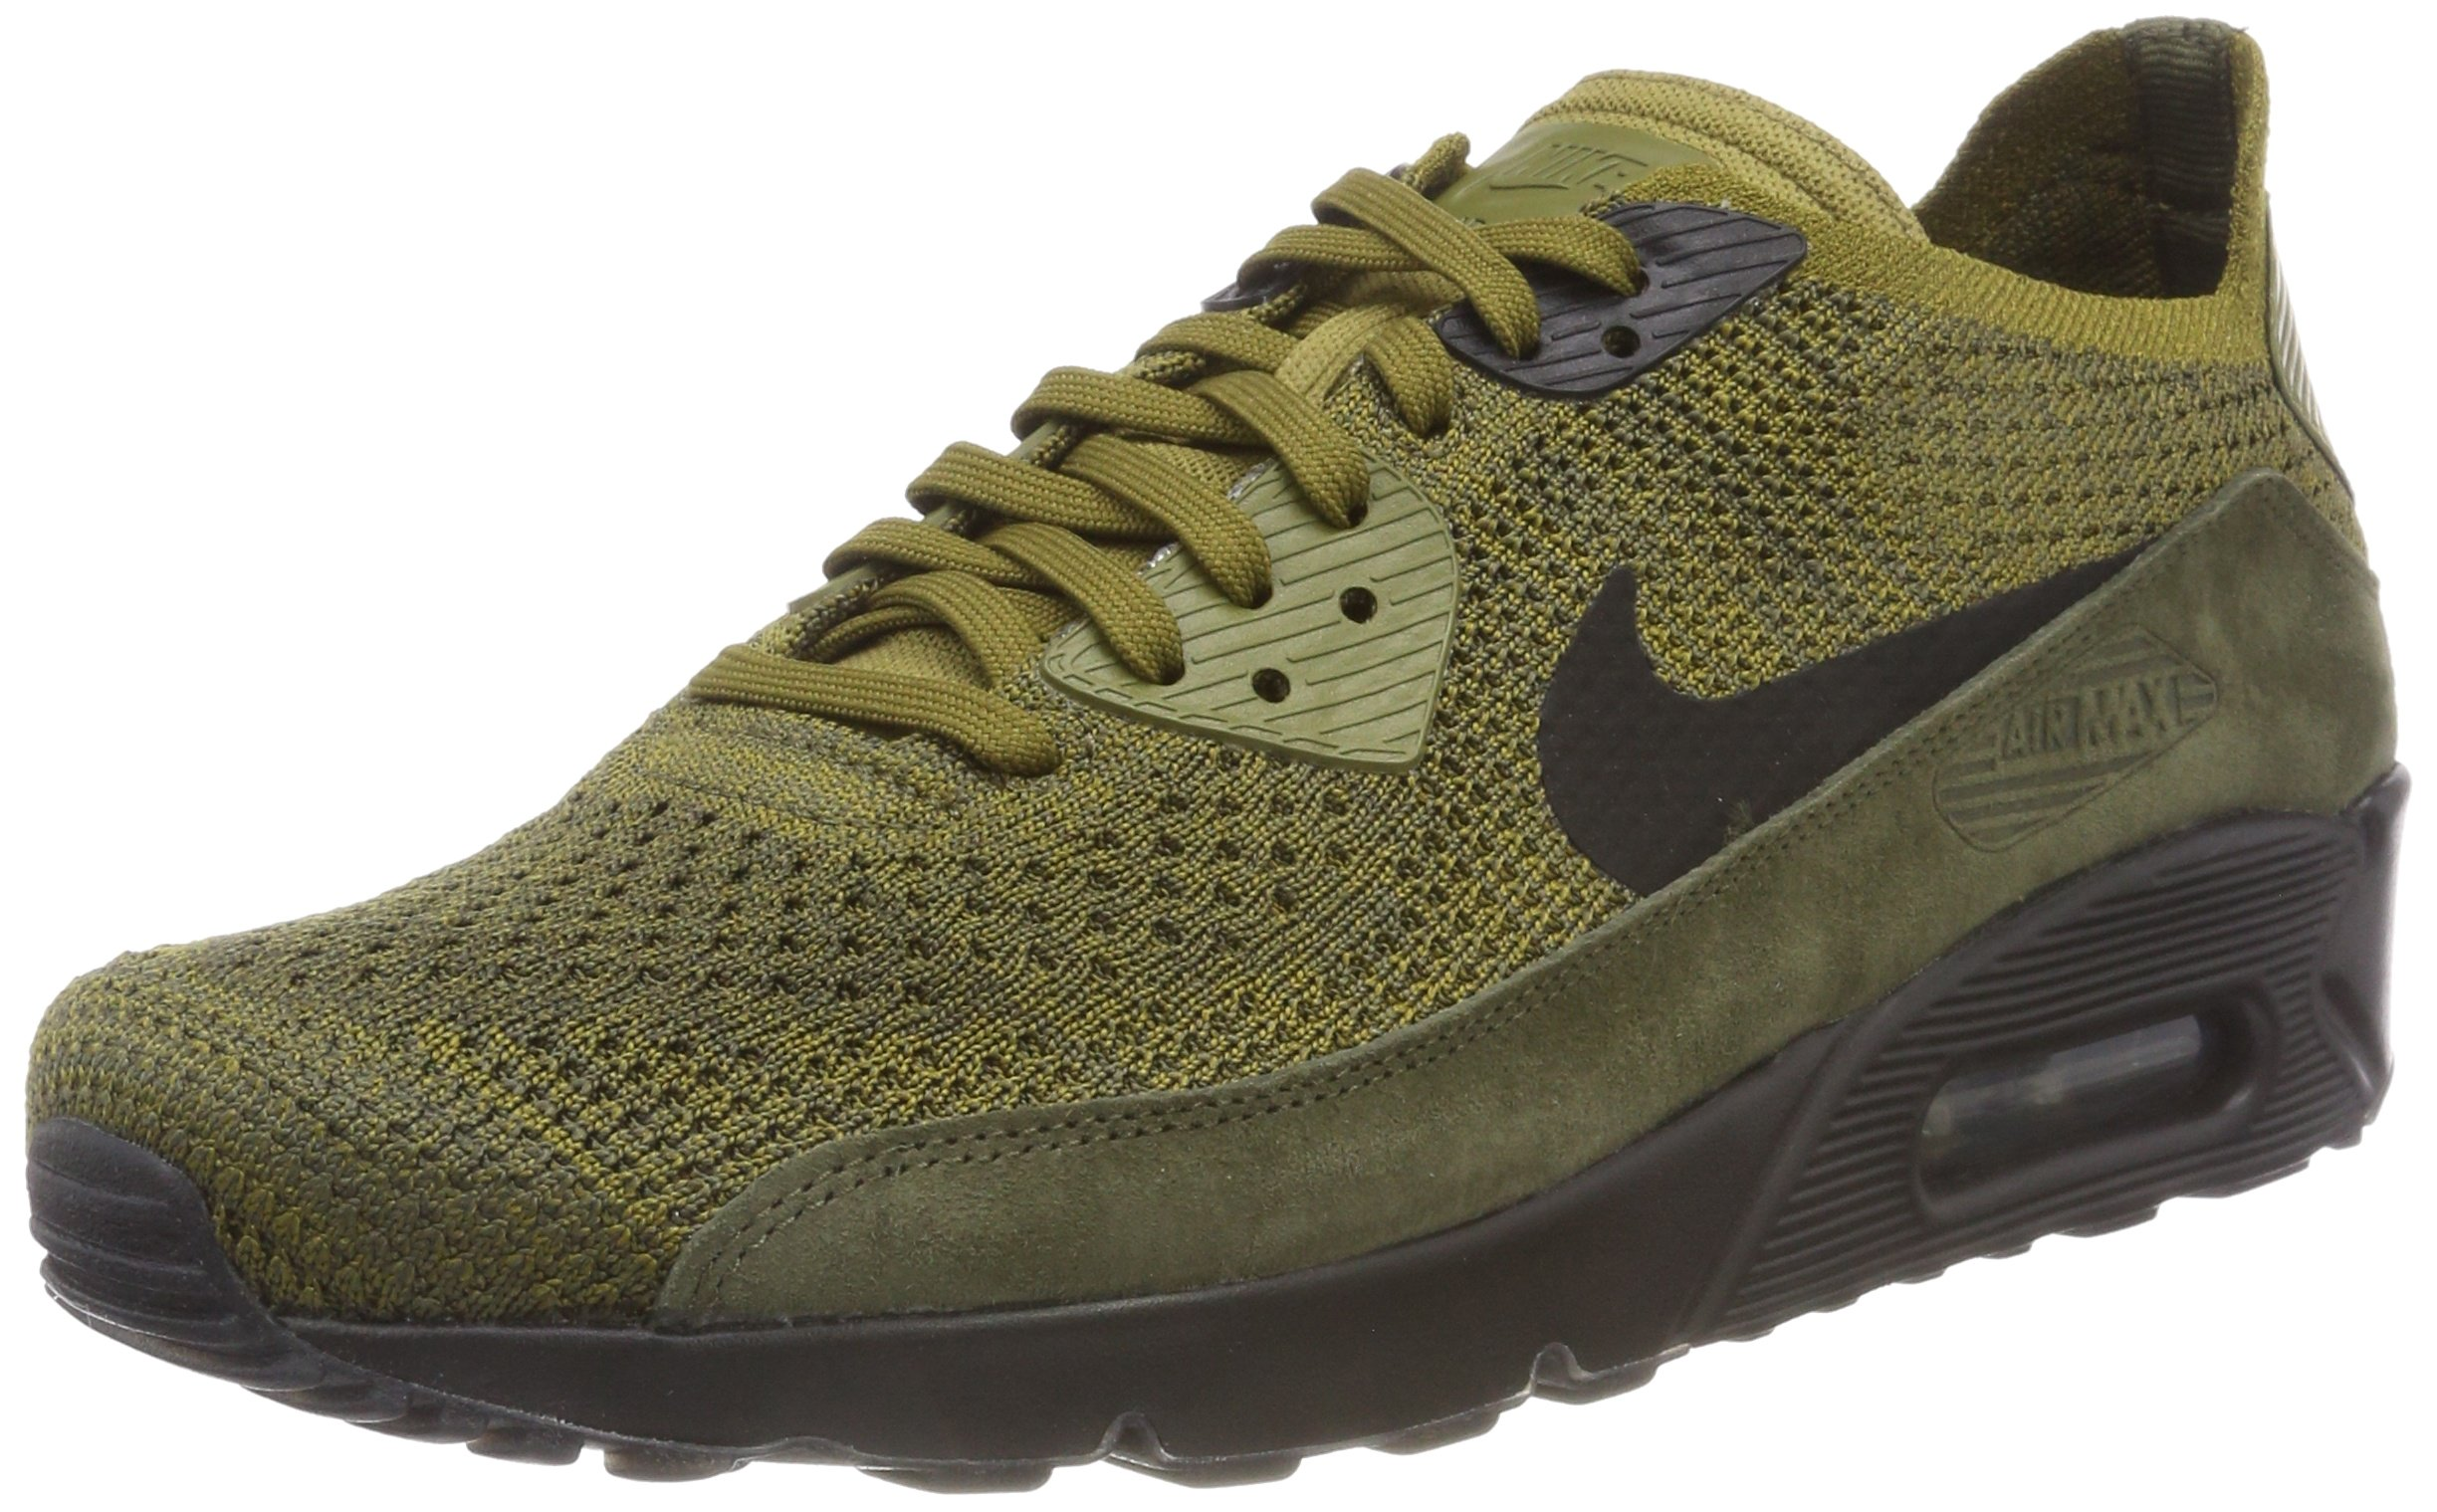 683456d20e Galleon - Nike Men's Air Max 90 Ultra 2.0 Flyknit Olive 875943-302 (Size: 9)